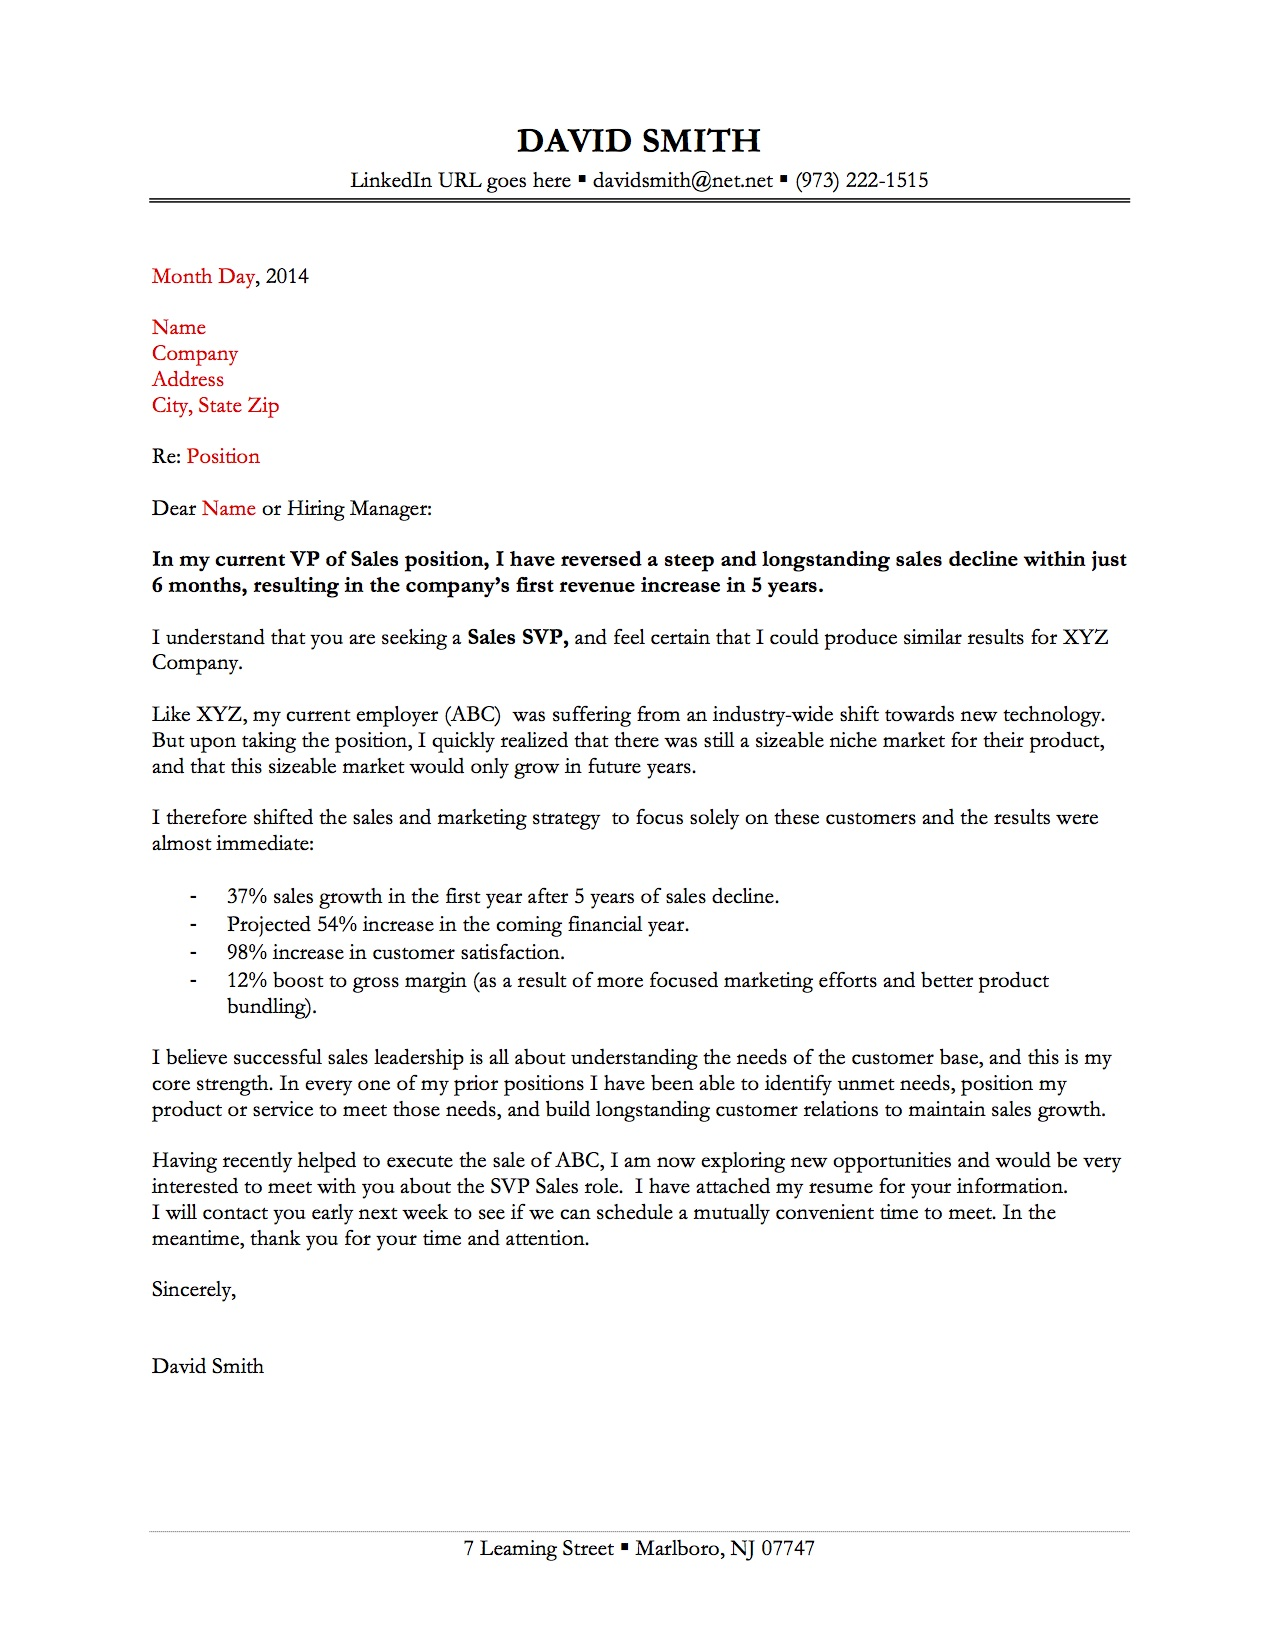 sample cover letter 2 - What Do I Write On A Cover Letter